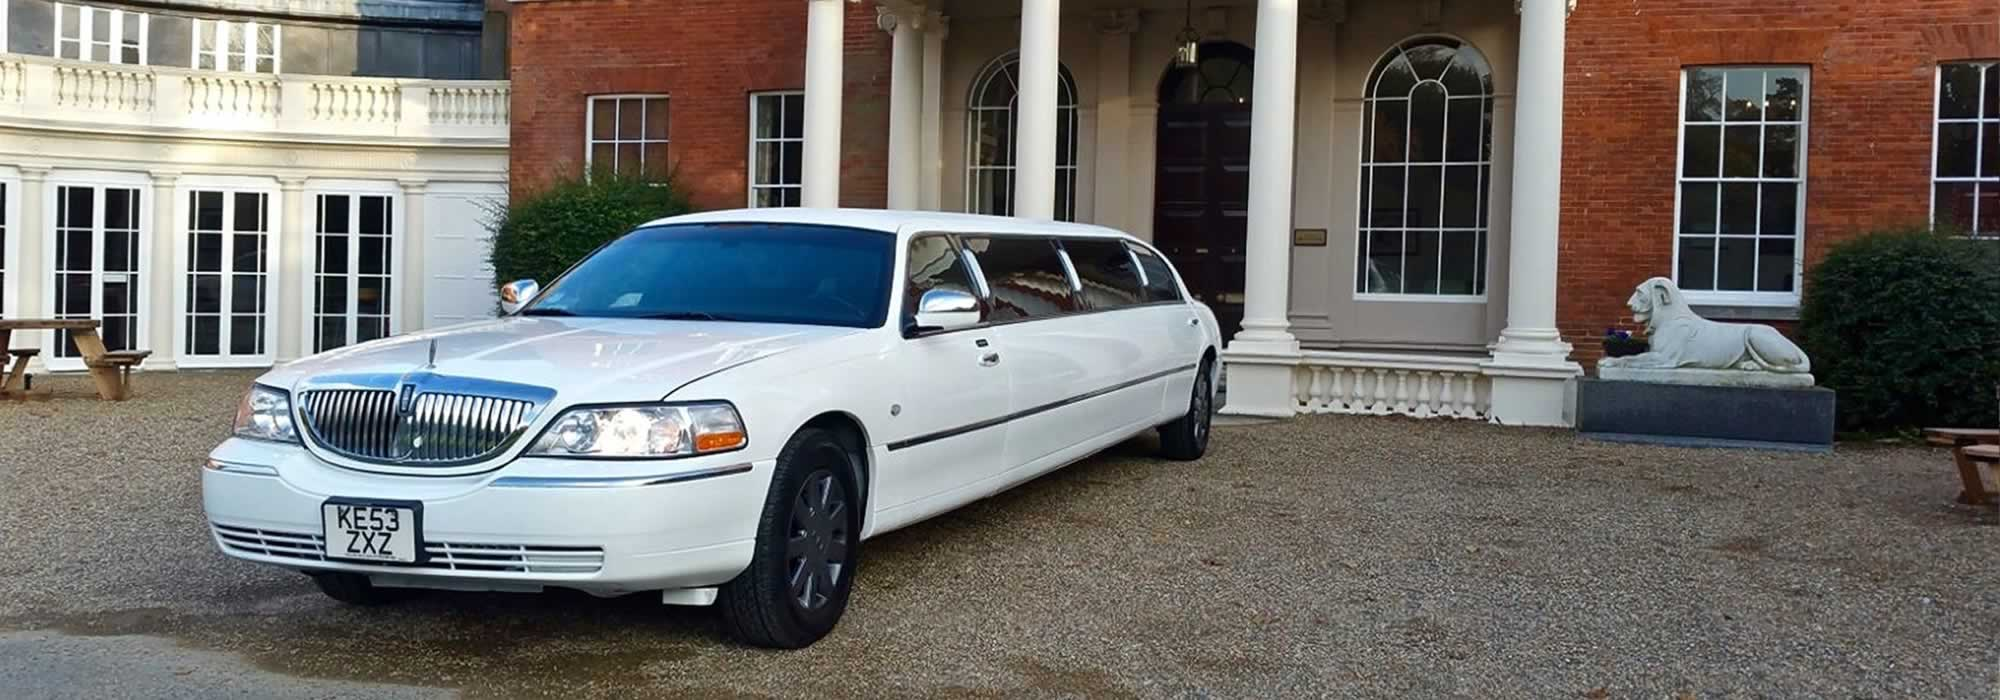 Lincoln Town Car Limo Hire Limousines In London